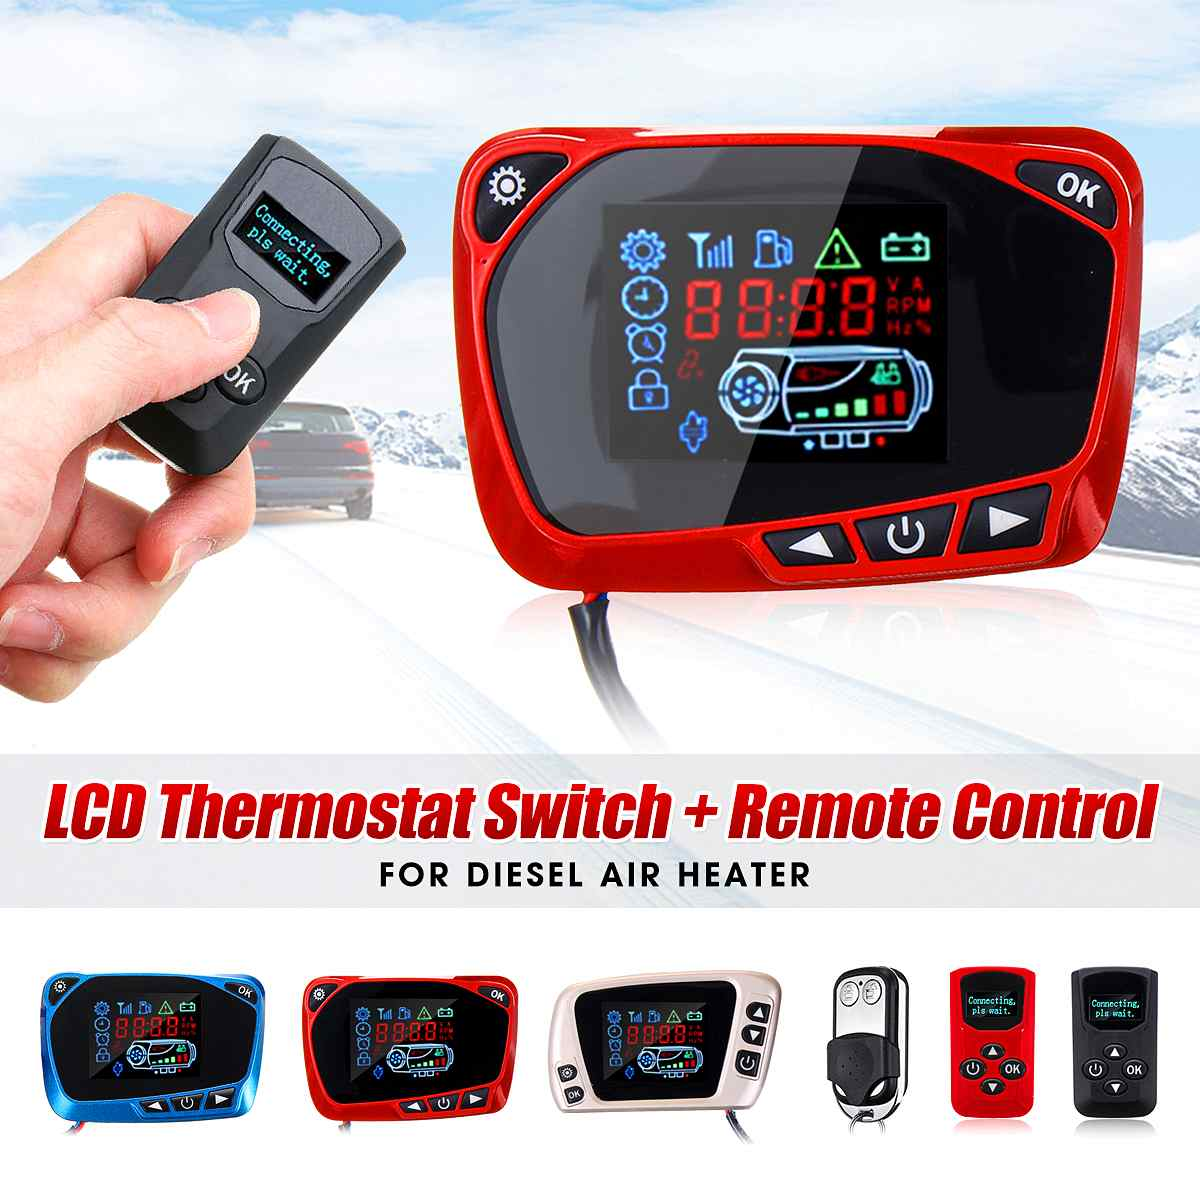 For 5kw/8kw Car Heater 12/24V Air Diesel Heater Parking Heater LCD Thermostat Display Switch & Remote Controller Car Accessories